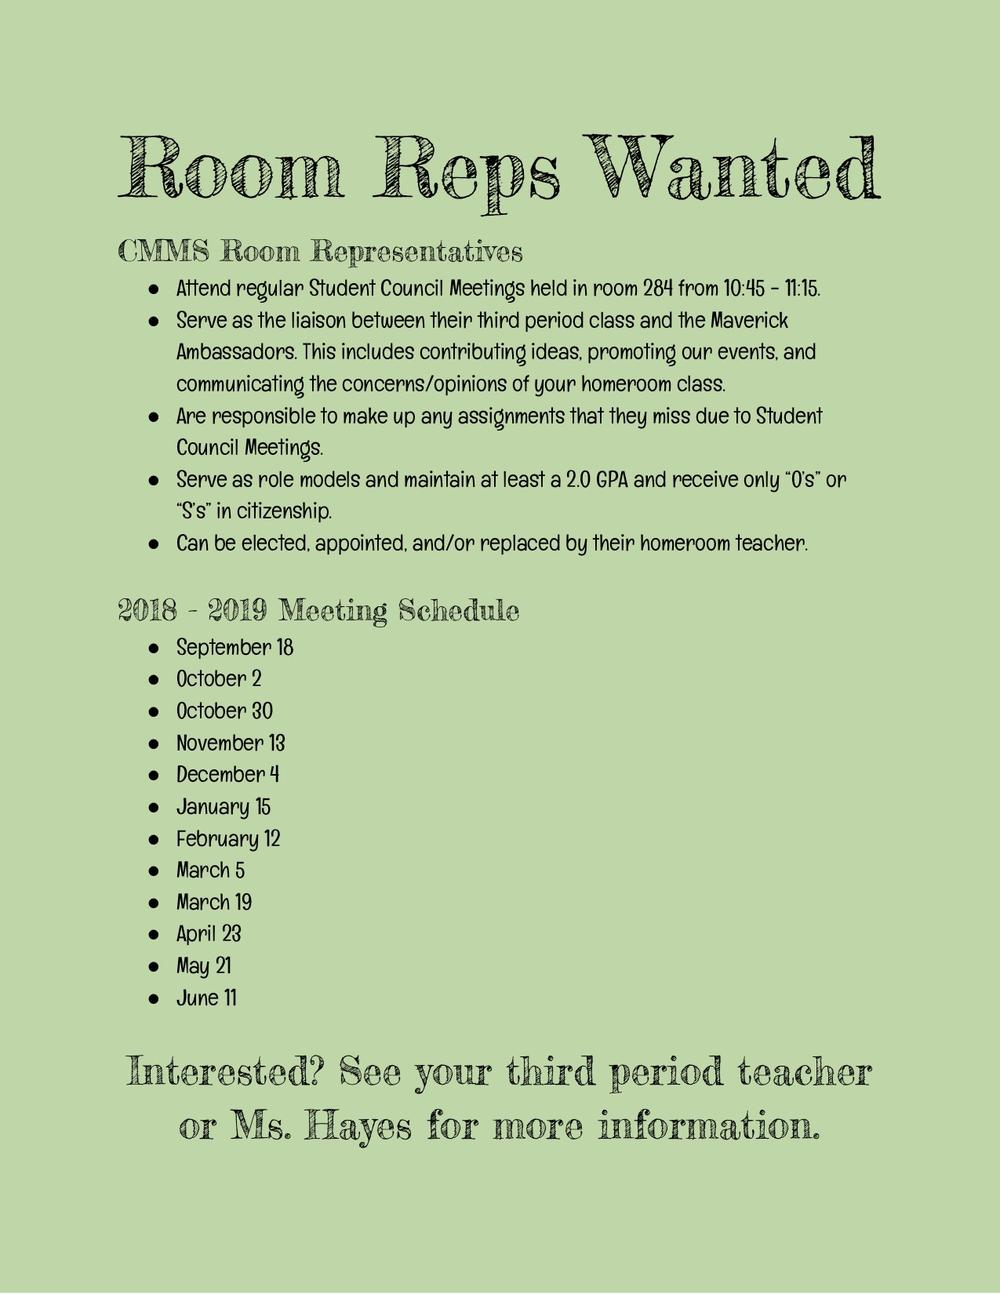 Room Reps Wanted  qualifications, duties, and meeting dates